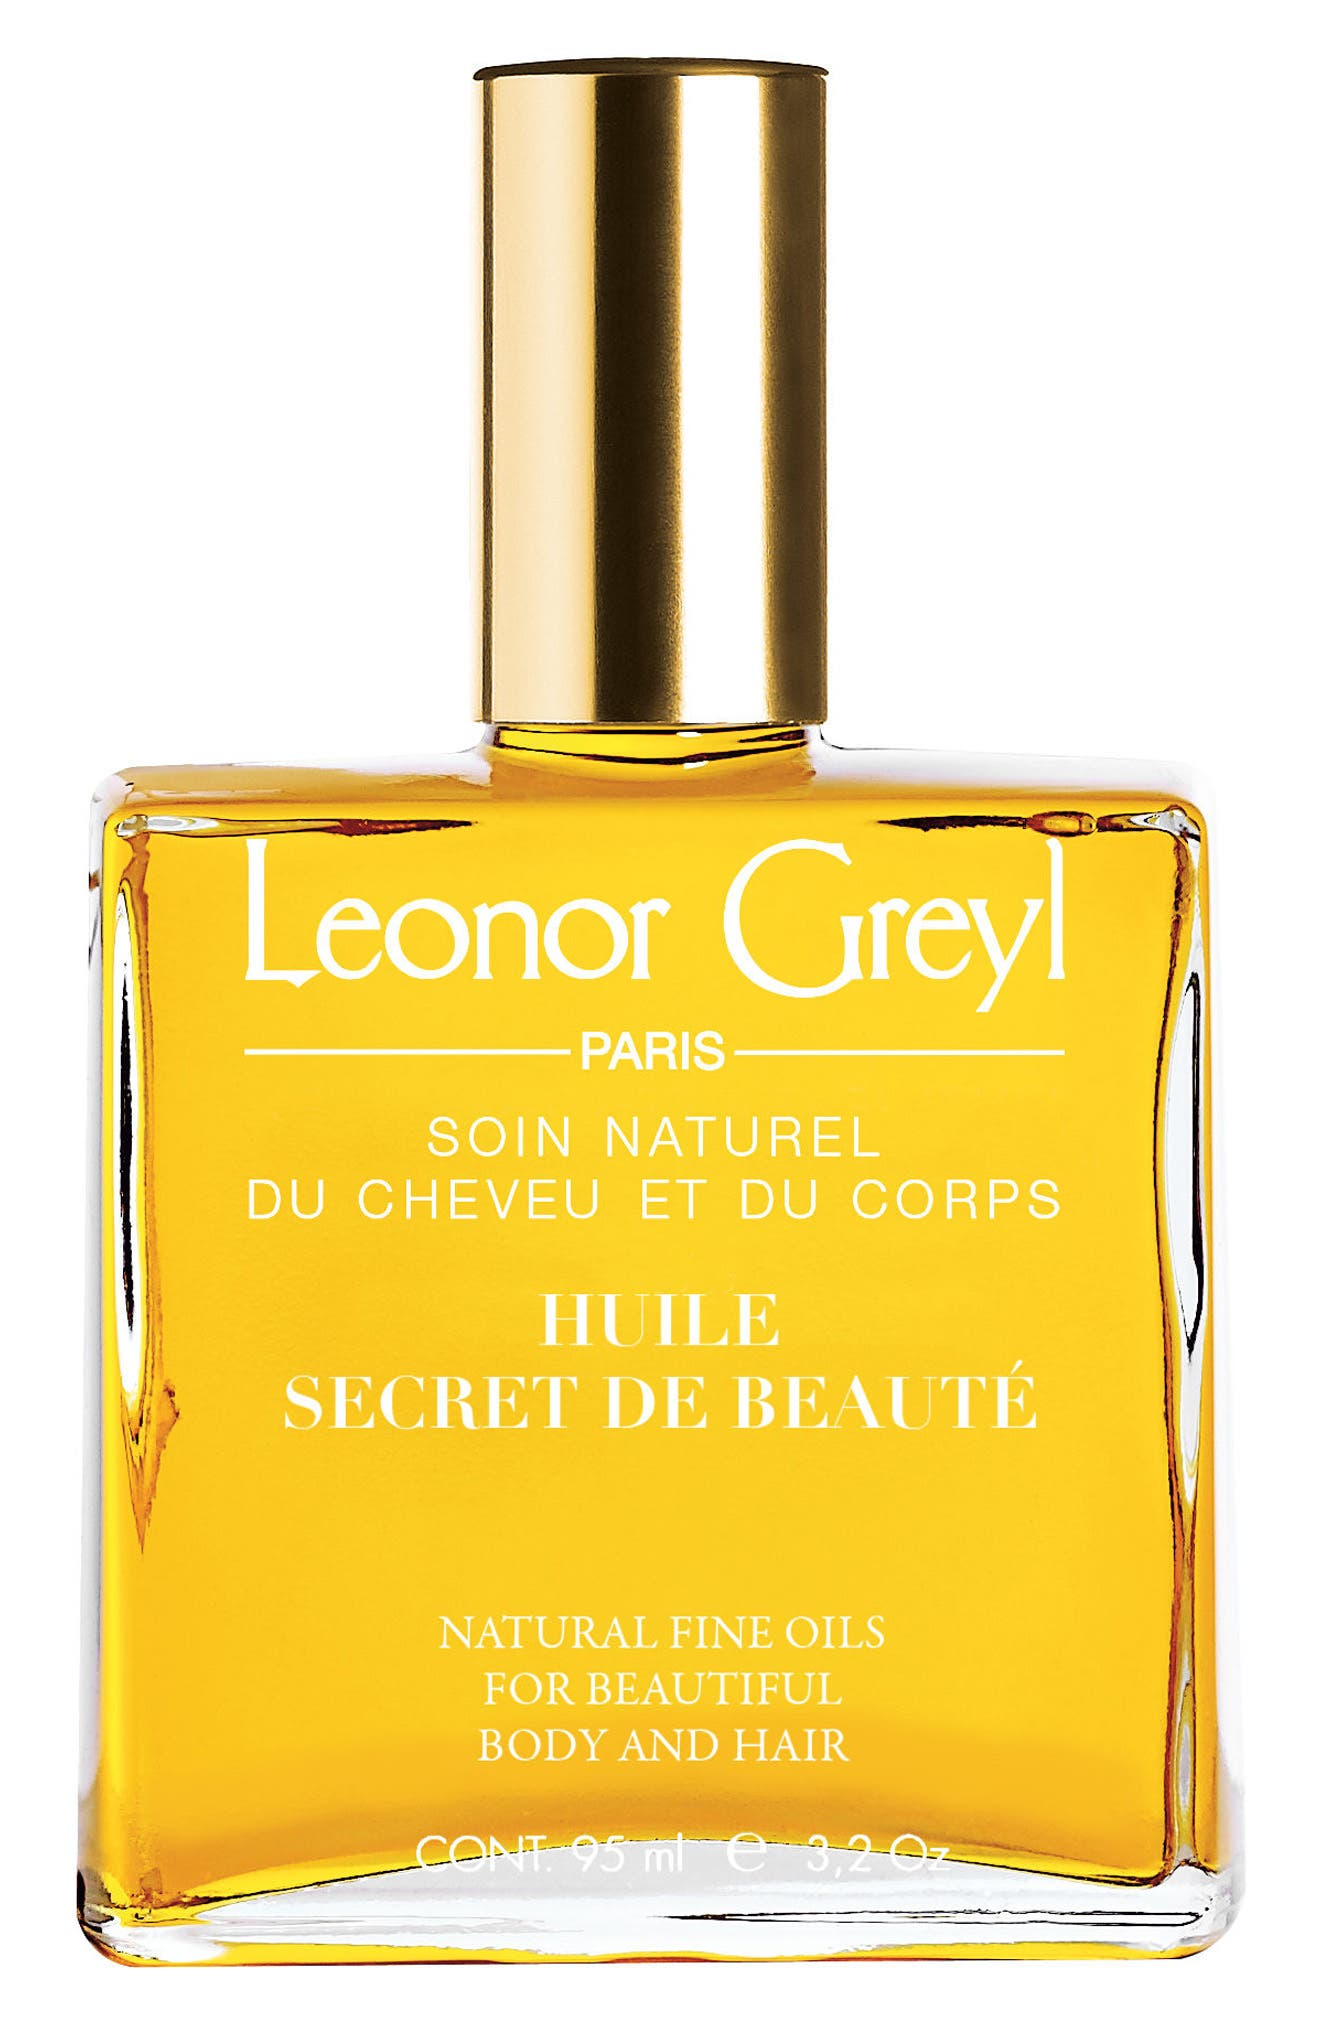 Alternate Image 1 Selected - Leonor Greyl PARIS 'Huile Secret de Beauté' Hair & Skin Oil